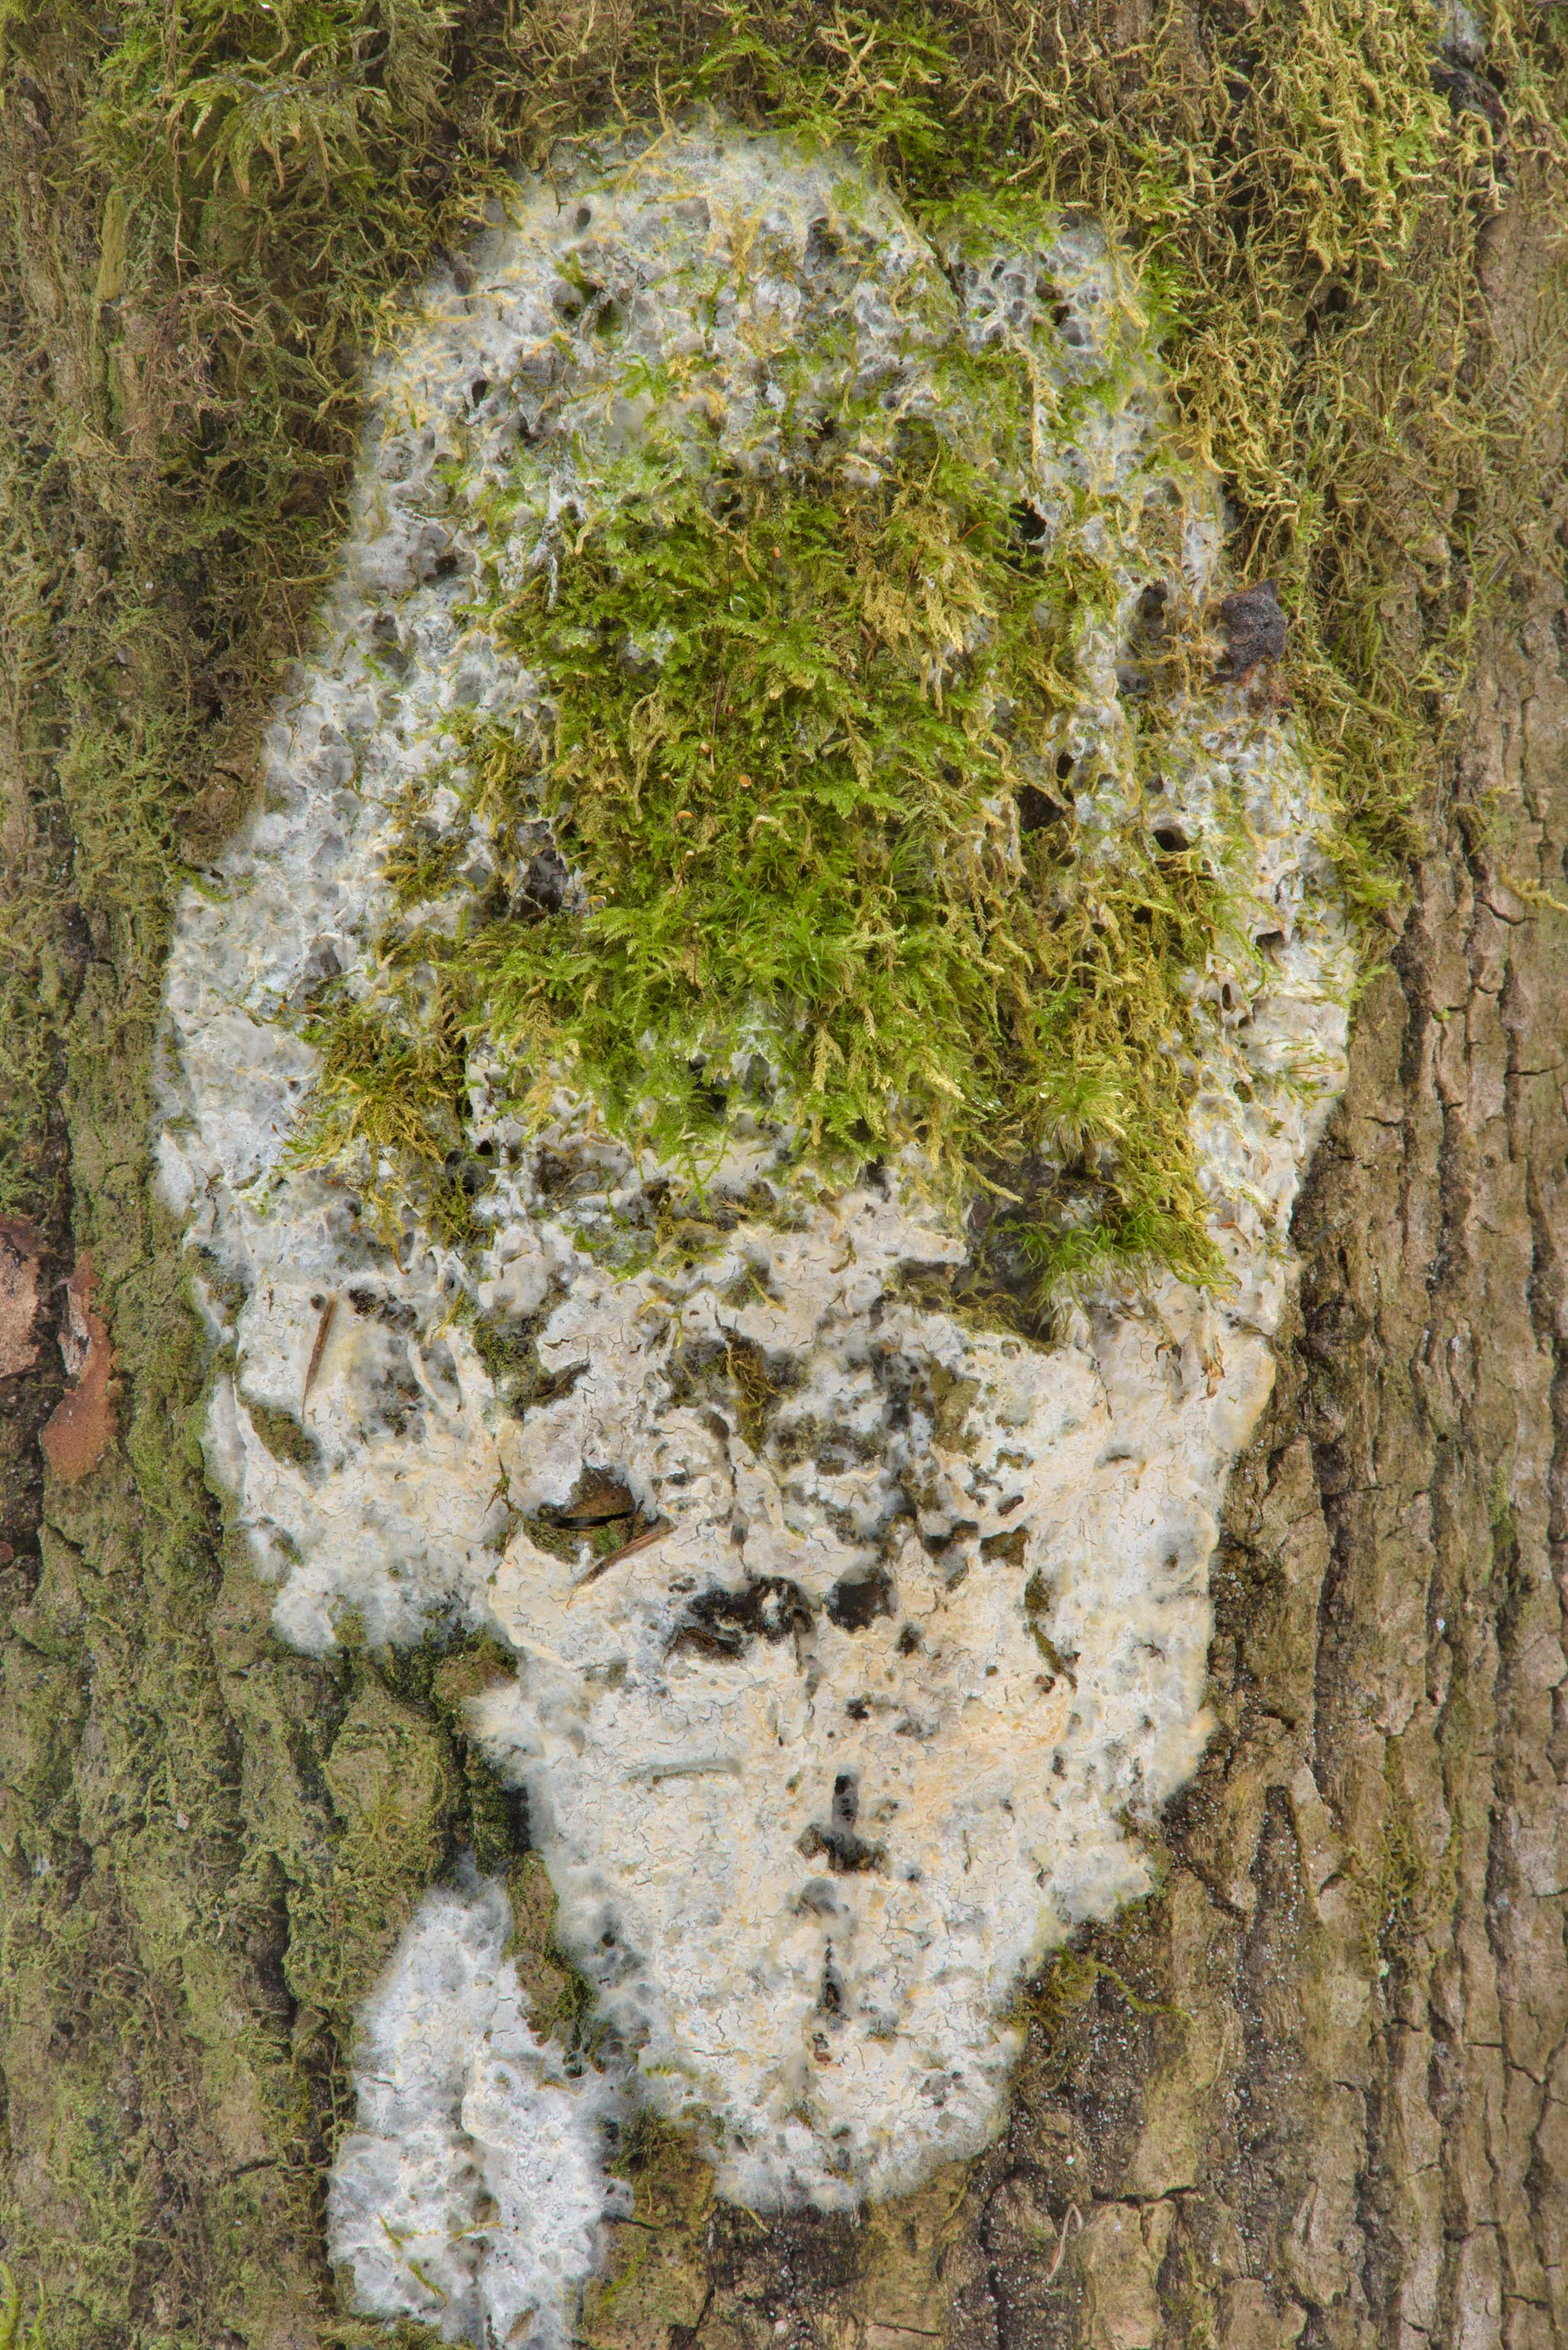 Patch of a whitish corticioid fungus on a tree...Pesochny near St.Petersburg. Russia